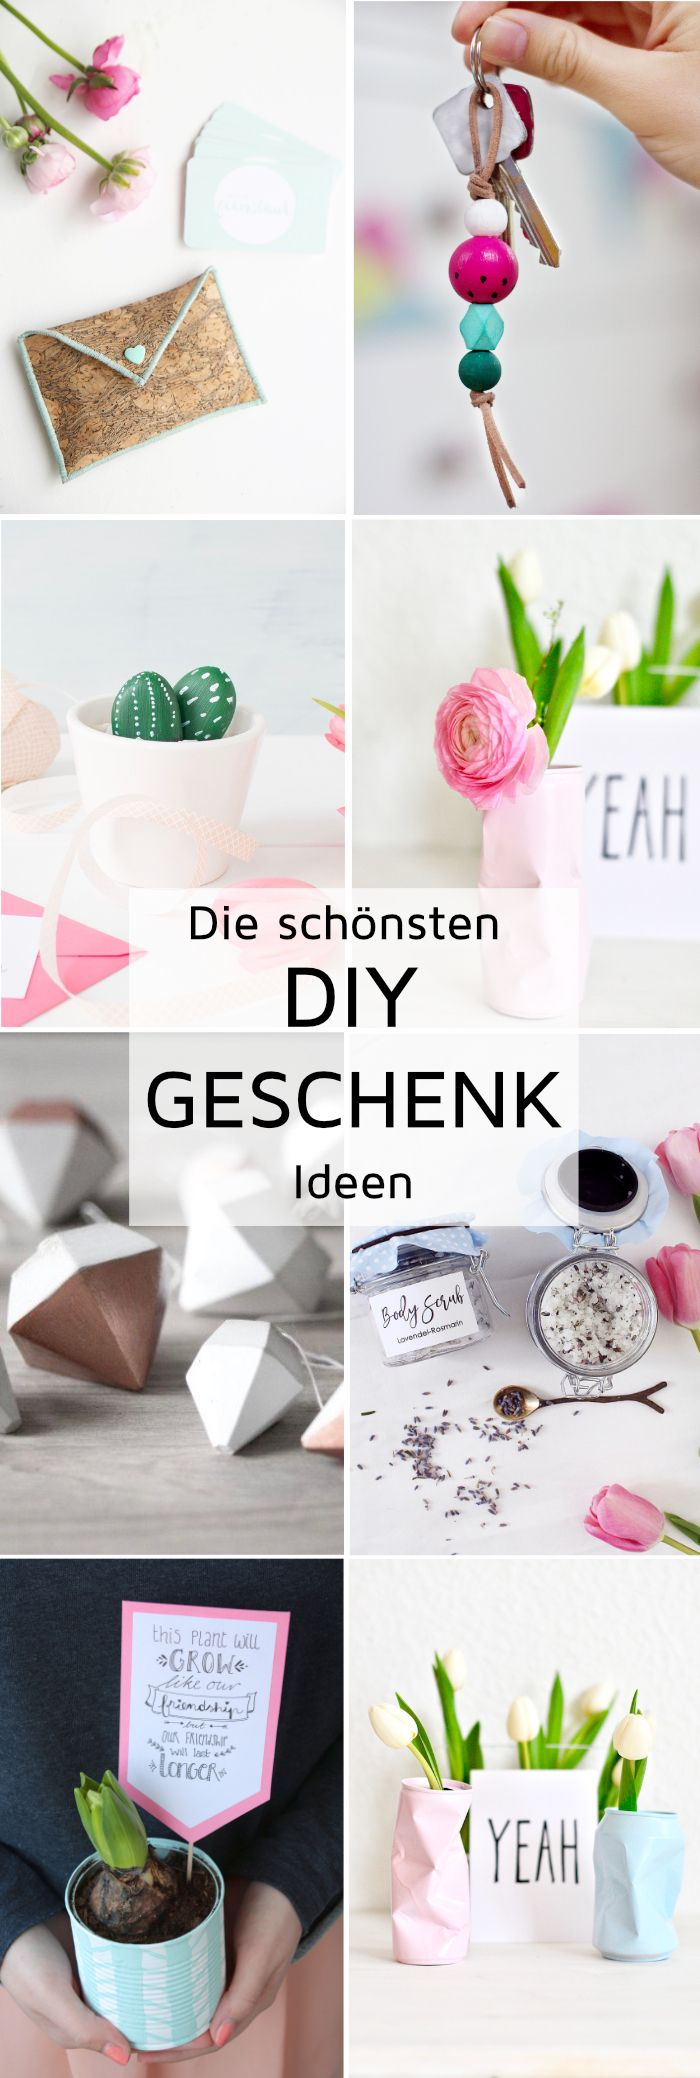 193 best Geschenke zum Muttertag images on Pinterest | Birthday ...